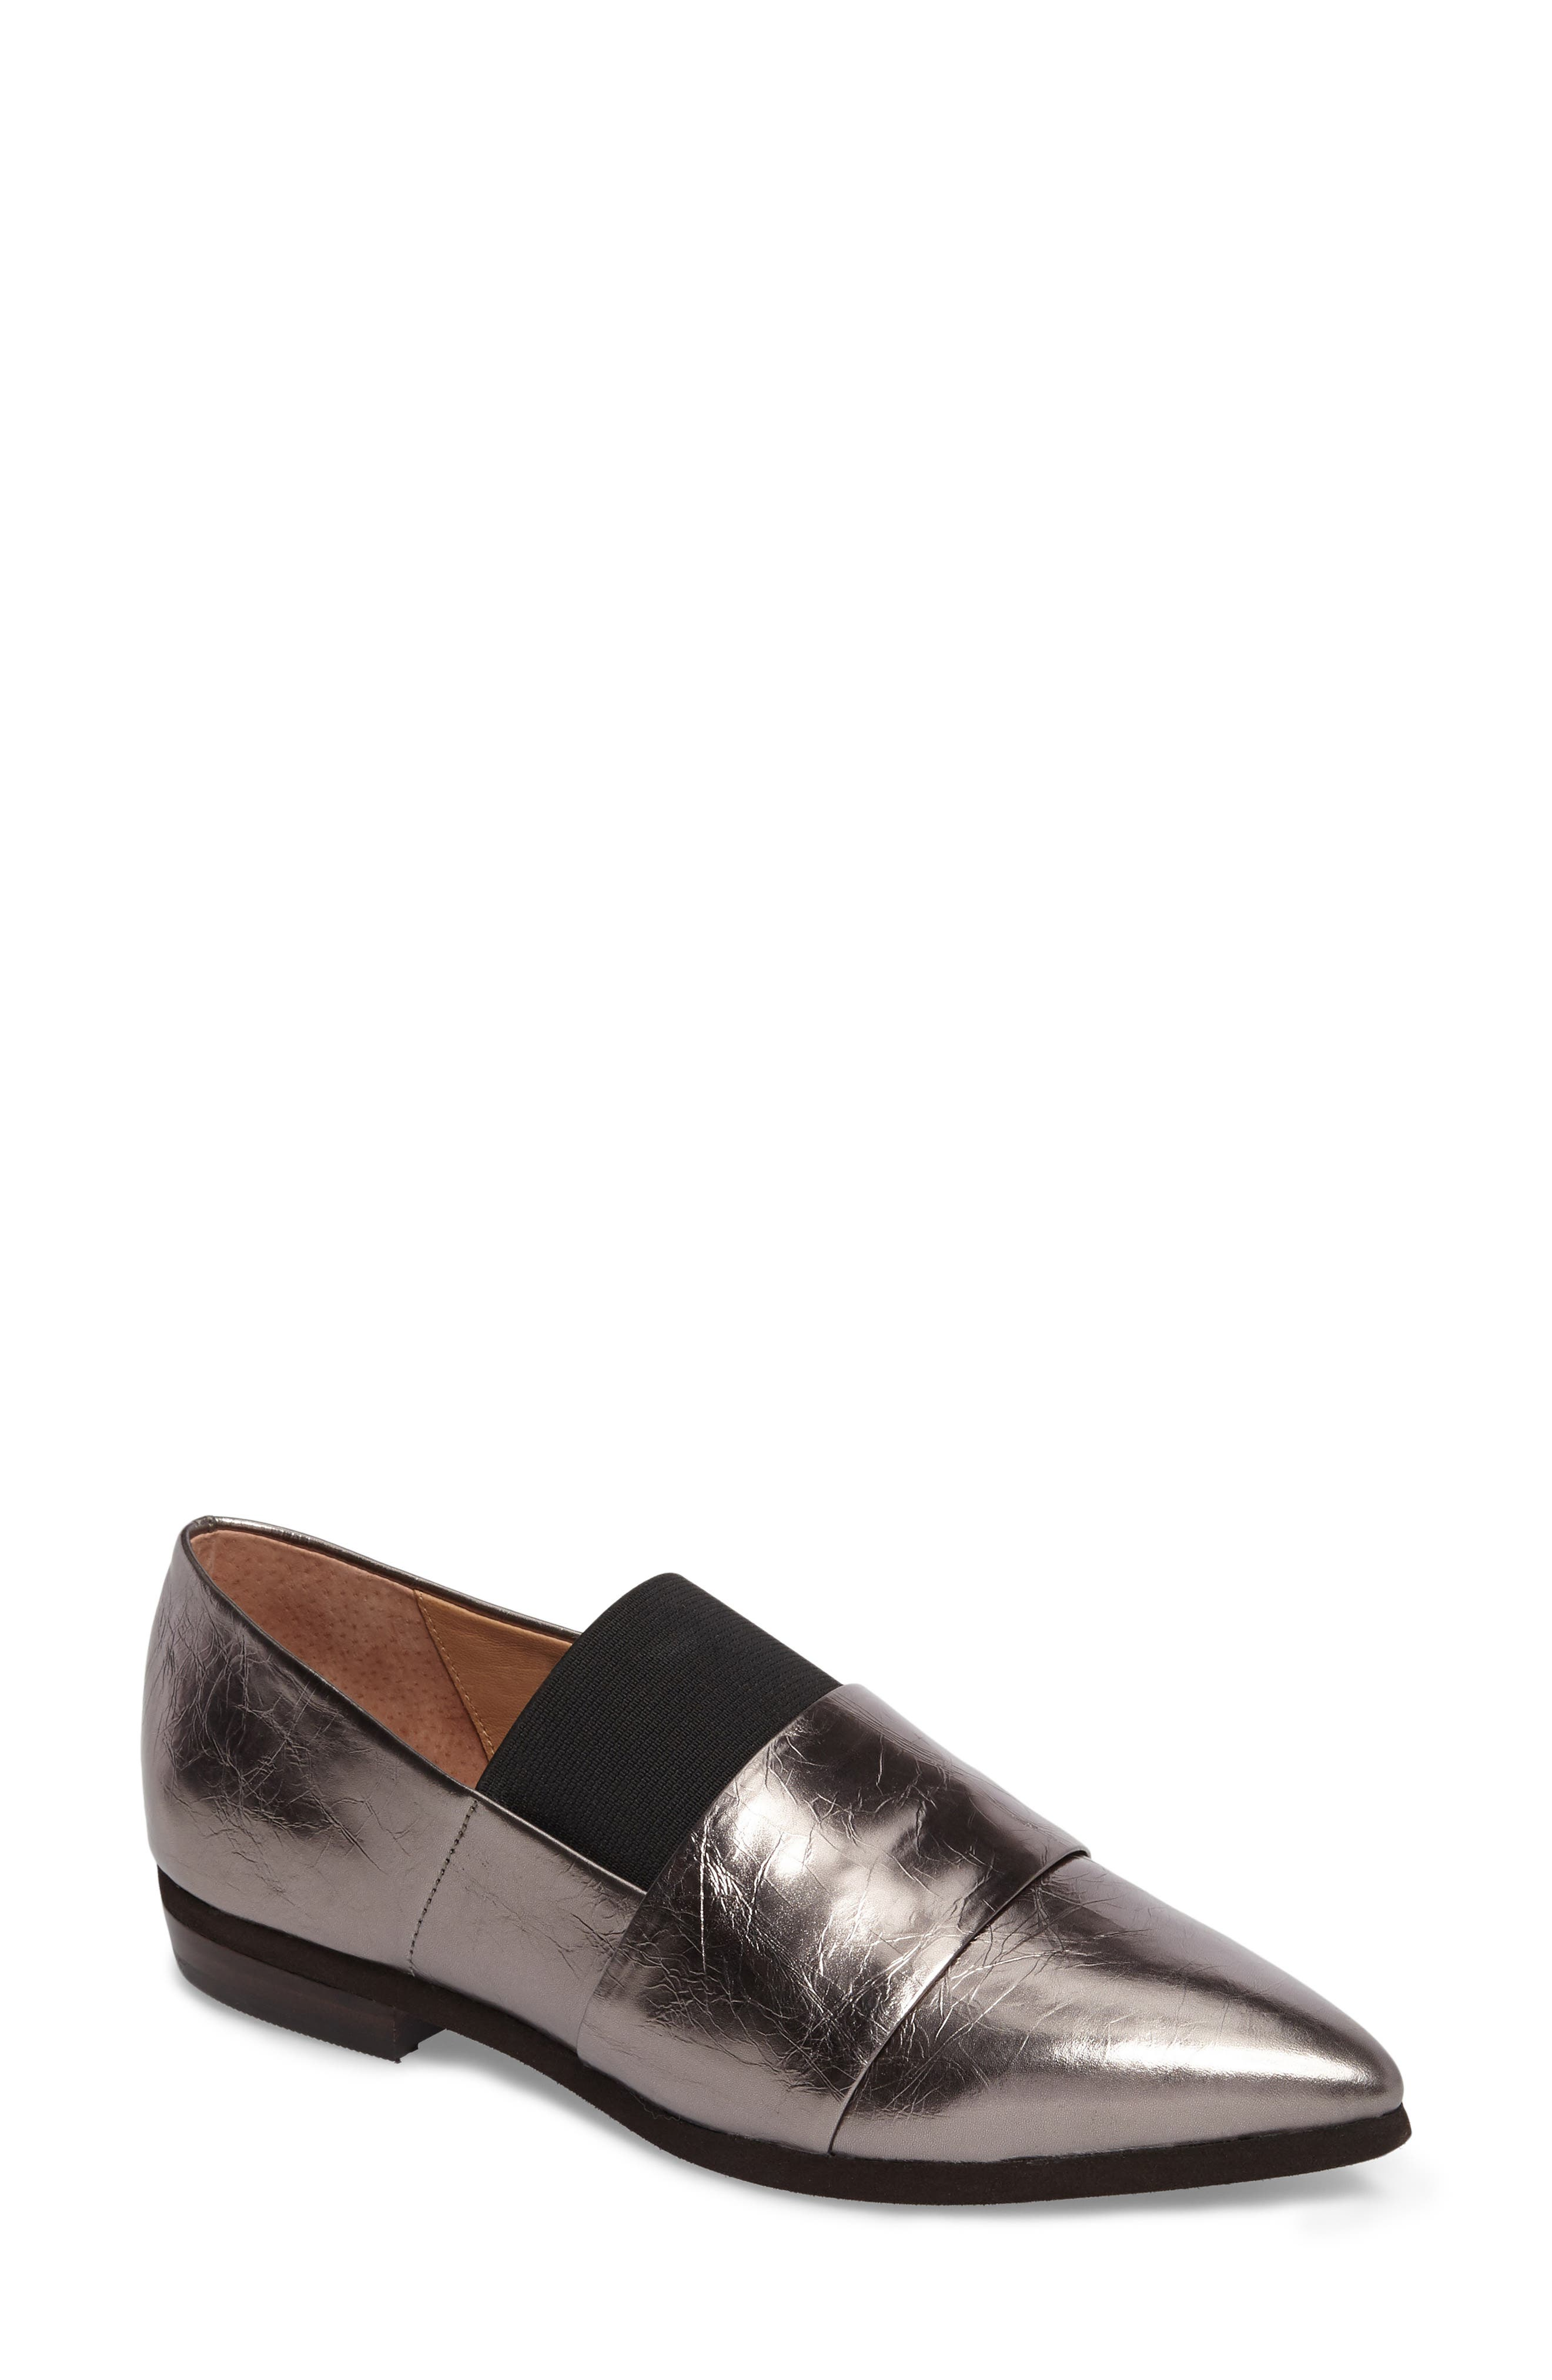 Alternate Image 1 Selected - Linea Paolo Mason Loafer (Women)